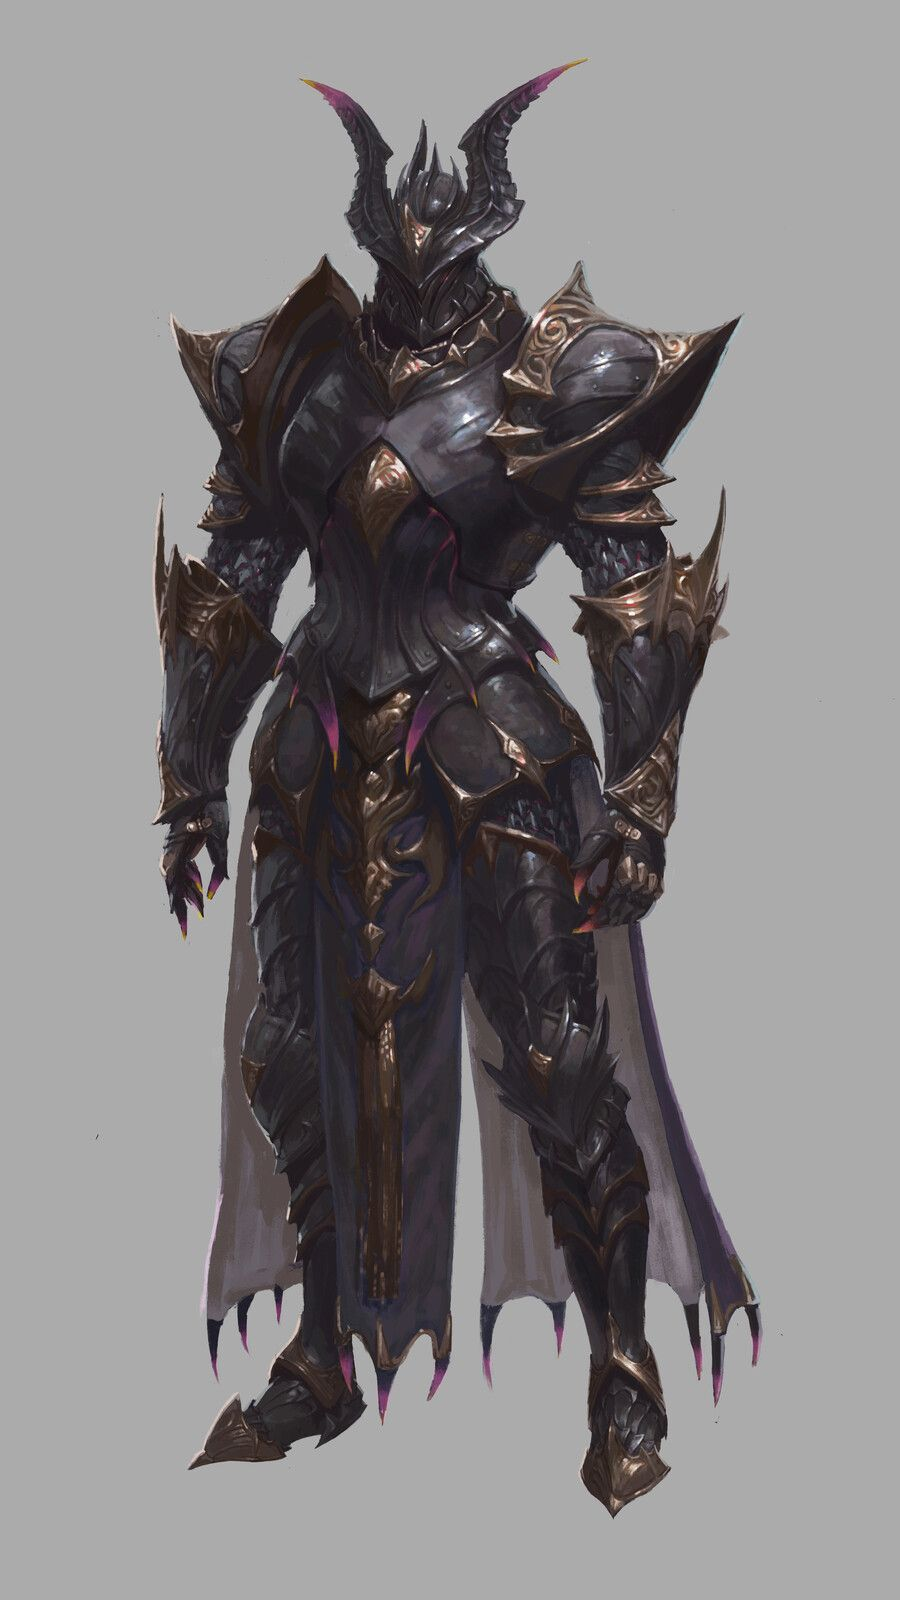 Study 04 Changyoung Jung On Artstation At Https Www Artstation Com Artwork Ooomjj Dark Fantasy Art Dragon Armor Armor Concept As the dragon was a factor, i tried new things because it felt like i was in the middle ages. dark fantasy art dragon armor armor